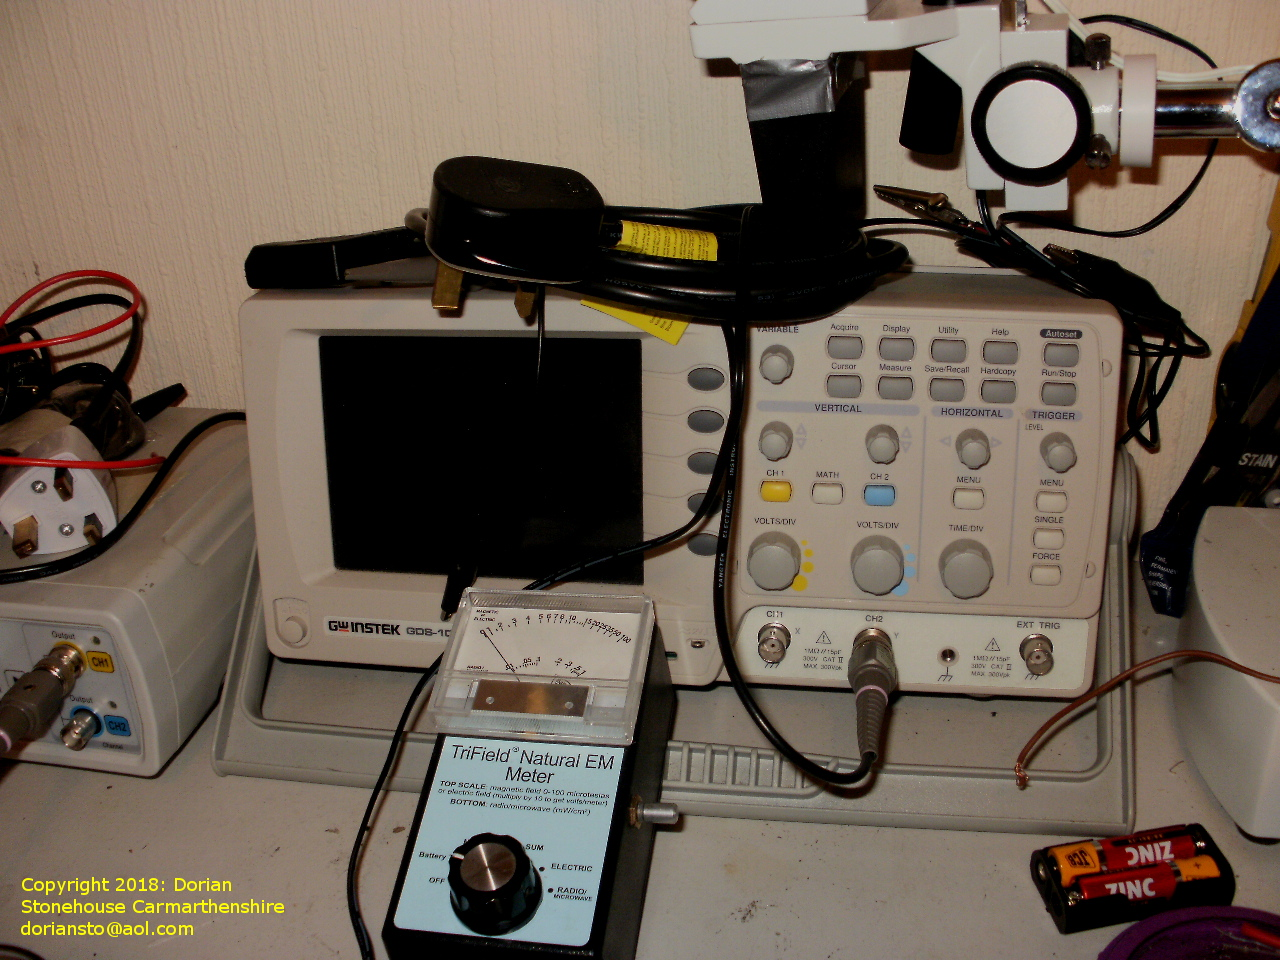 An oscilloscope and magnetometer